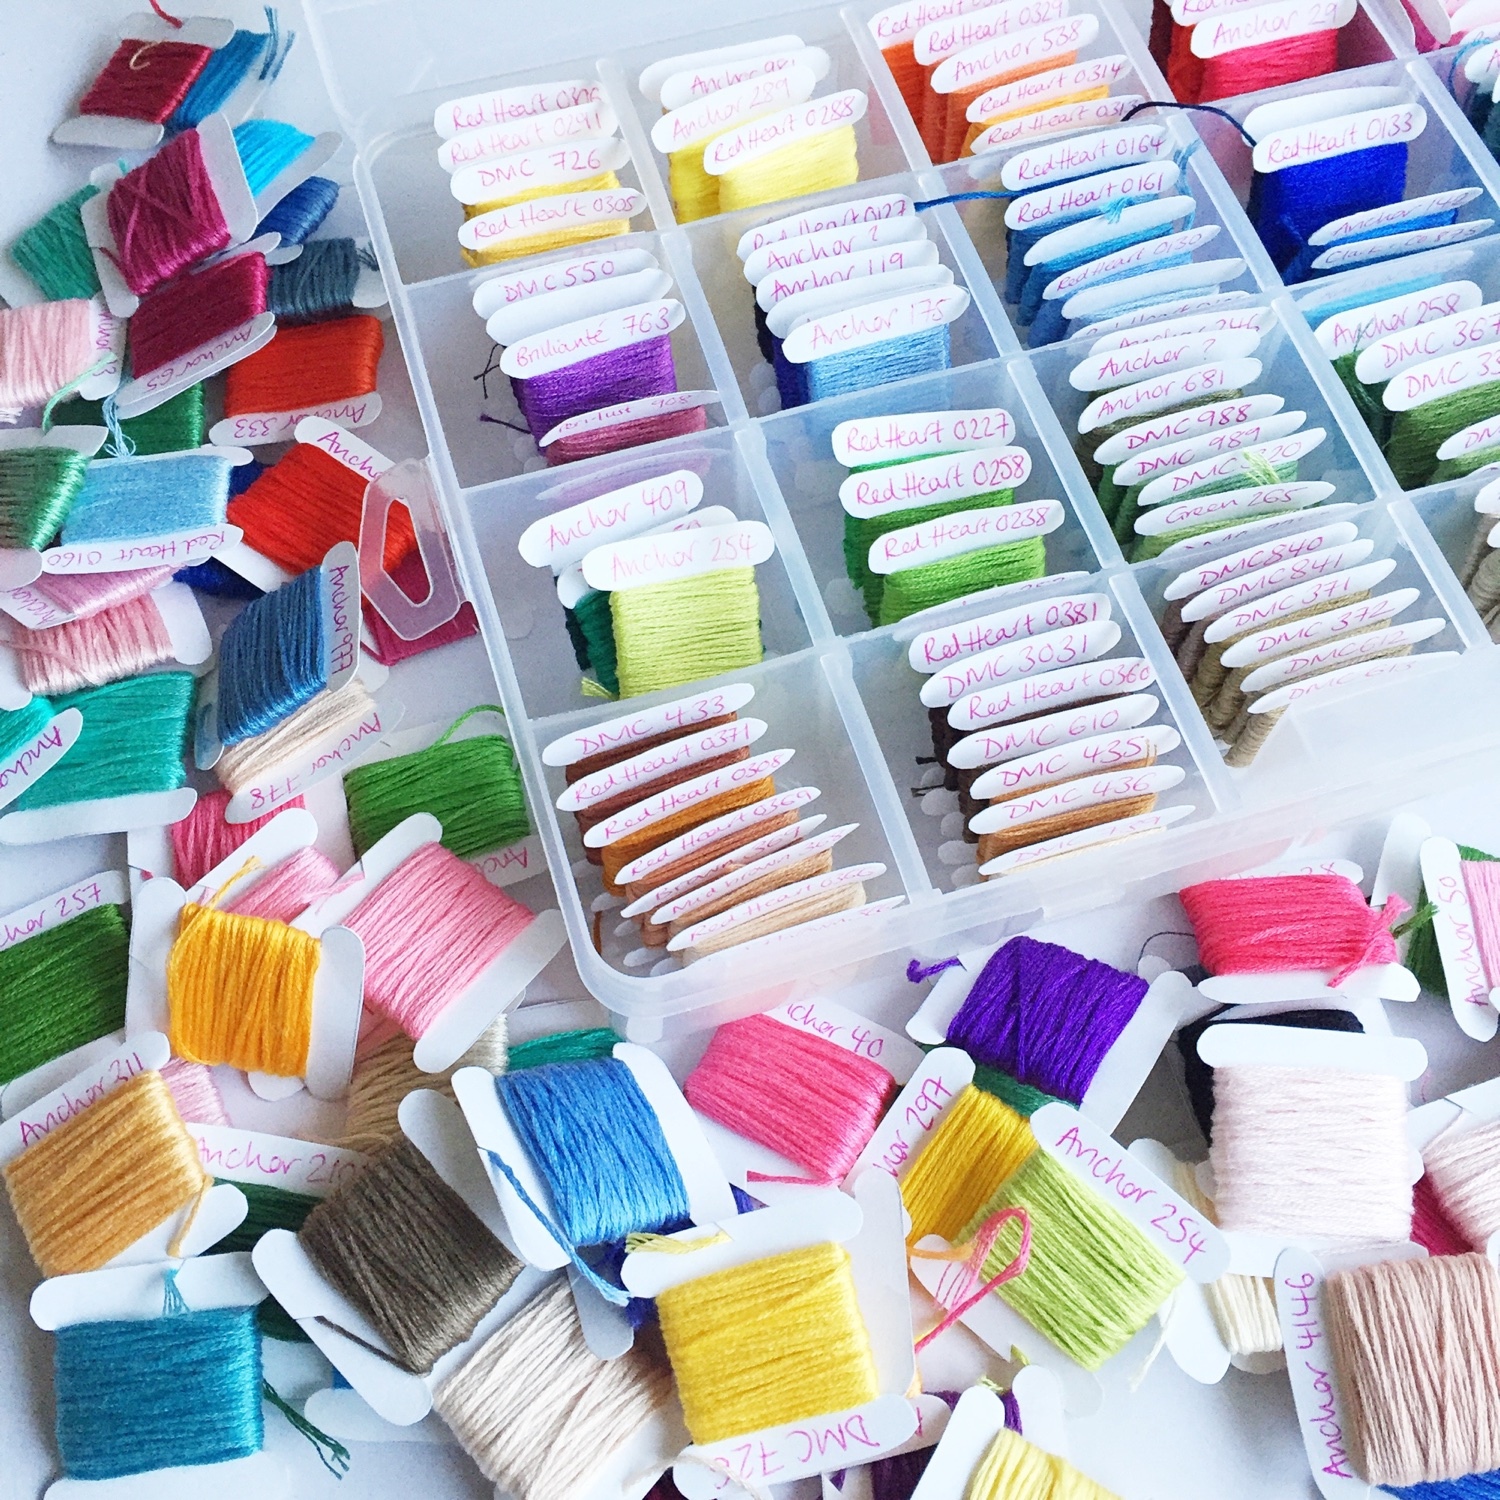 How I organised my embroidery threads | Hello! Hooray!